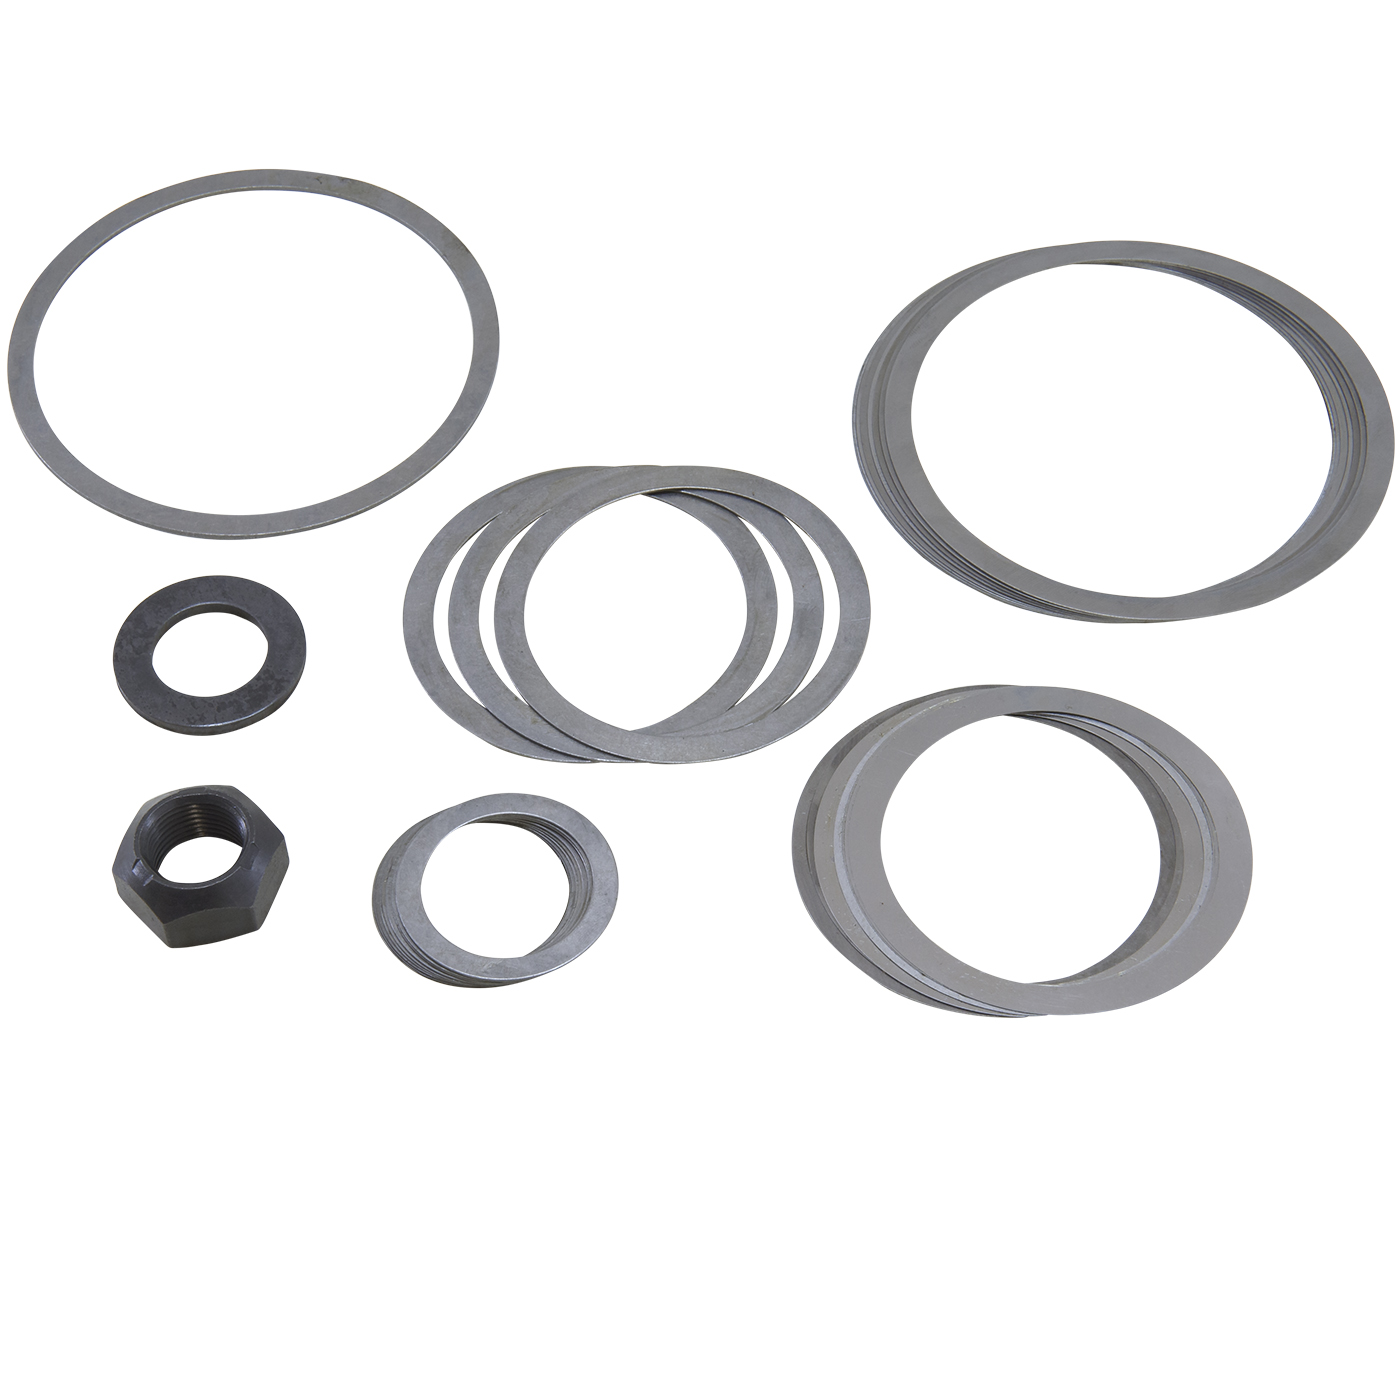 SK 706213 - Replacement Carrier shim kit for Dana 70 & 70HD